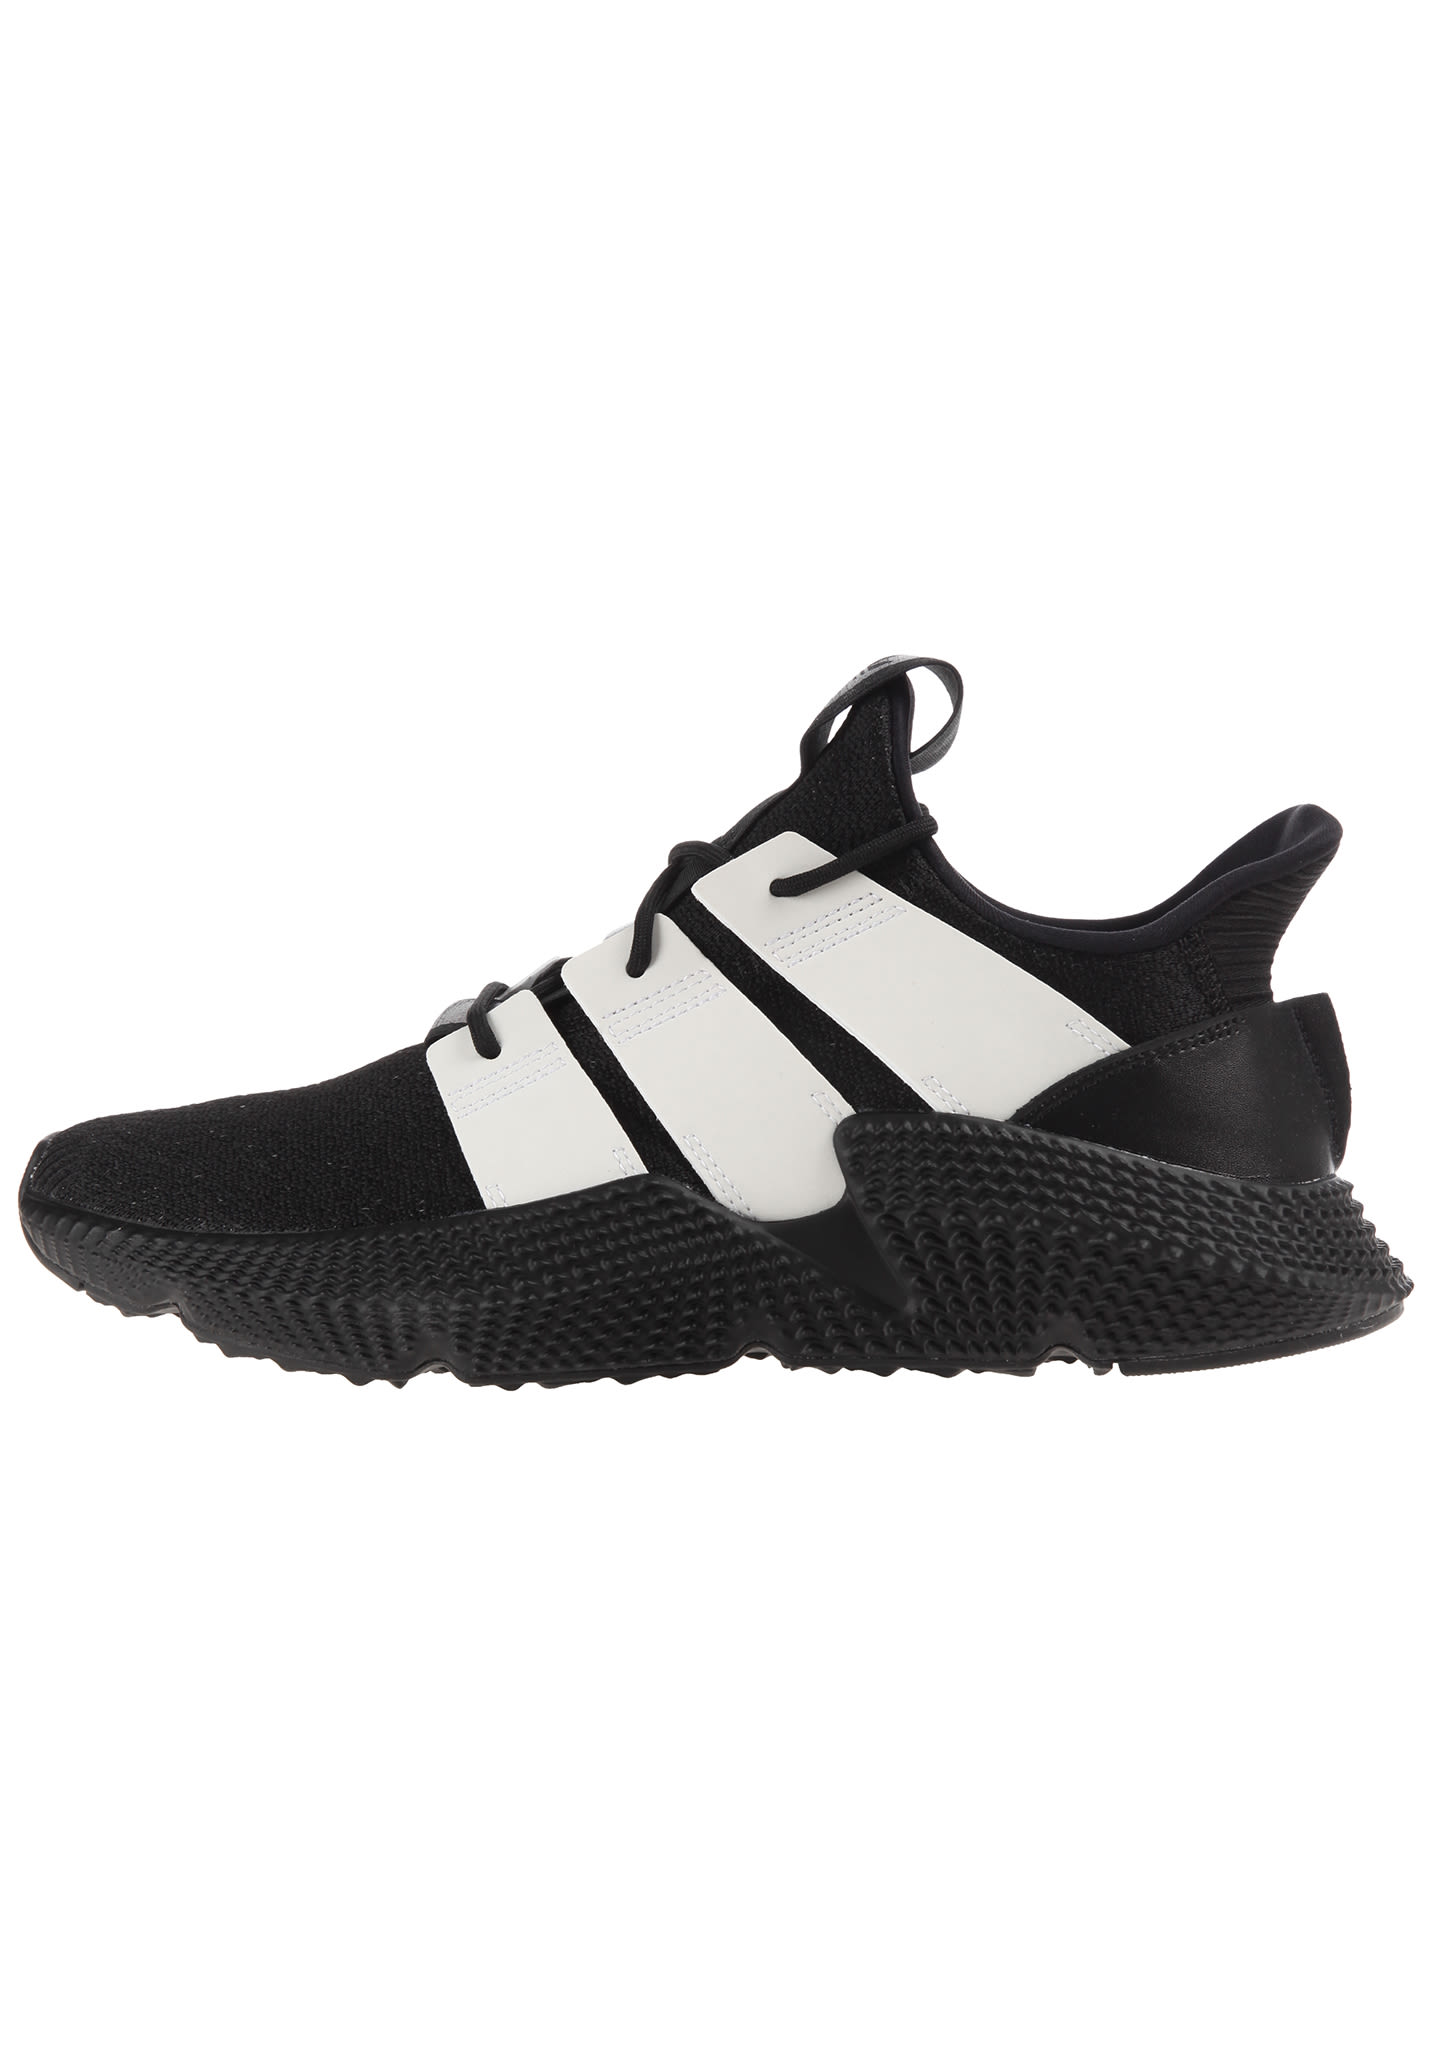 best service 7fd4a 54777 ADIDAS ORIGINALS Prophere - Sneaker per Uomo - Nero - Planet Sports